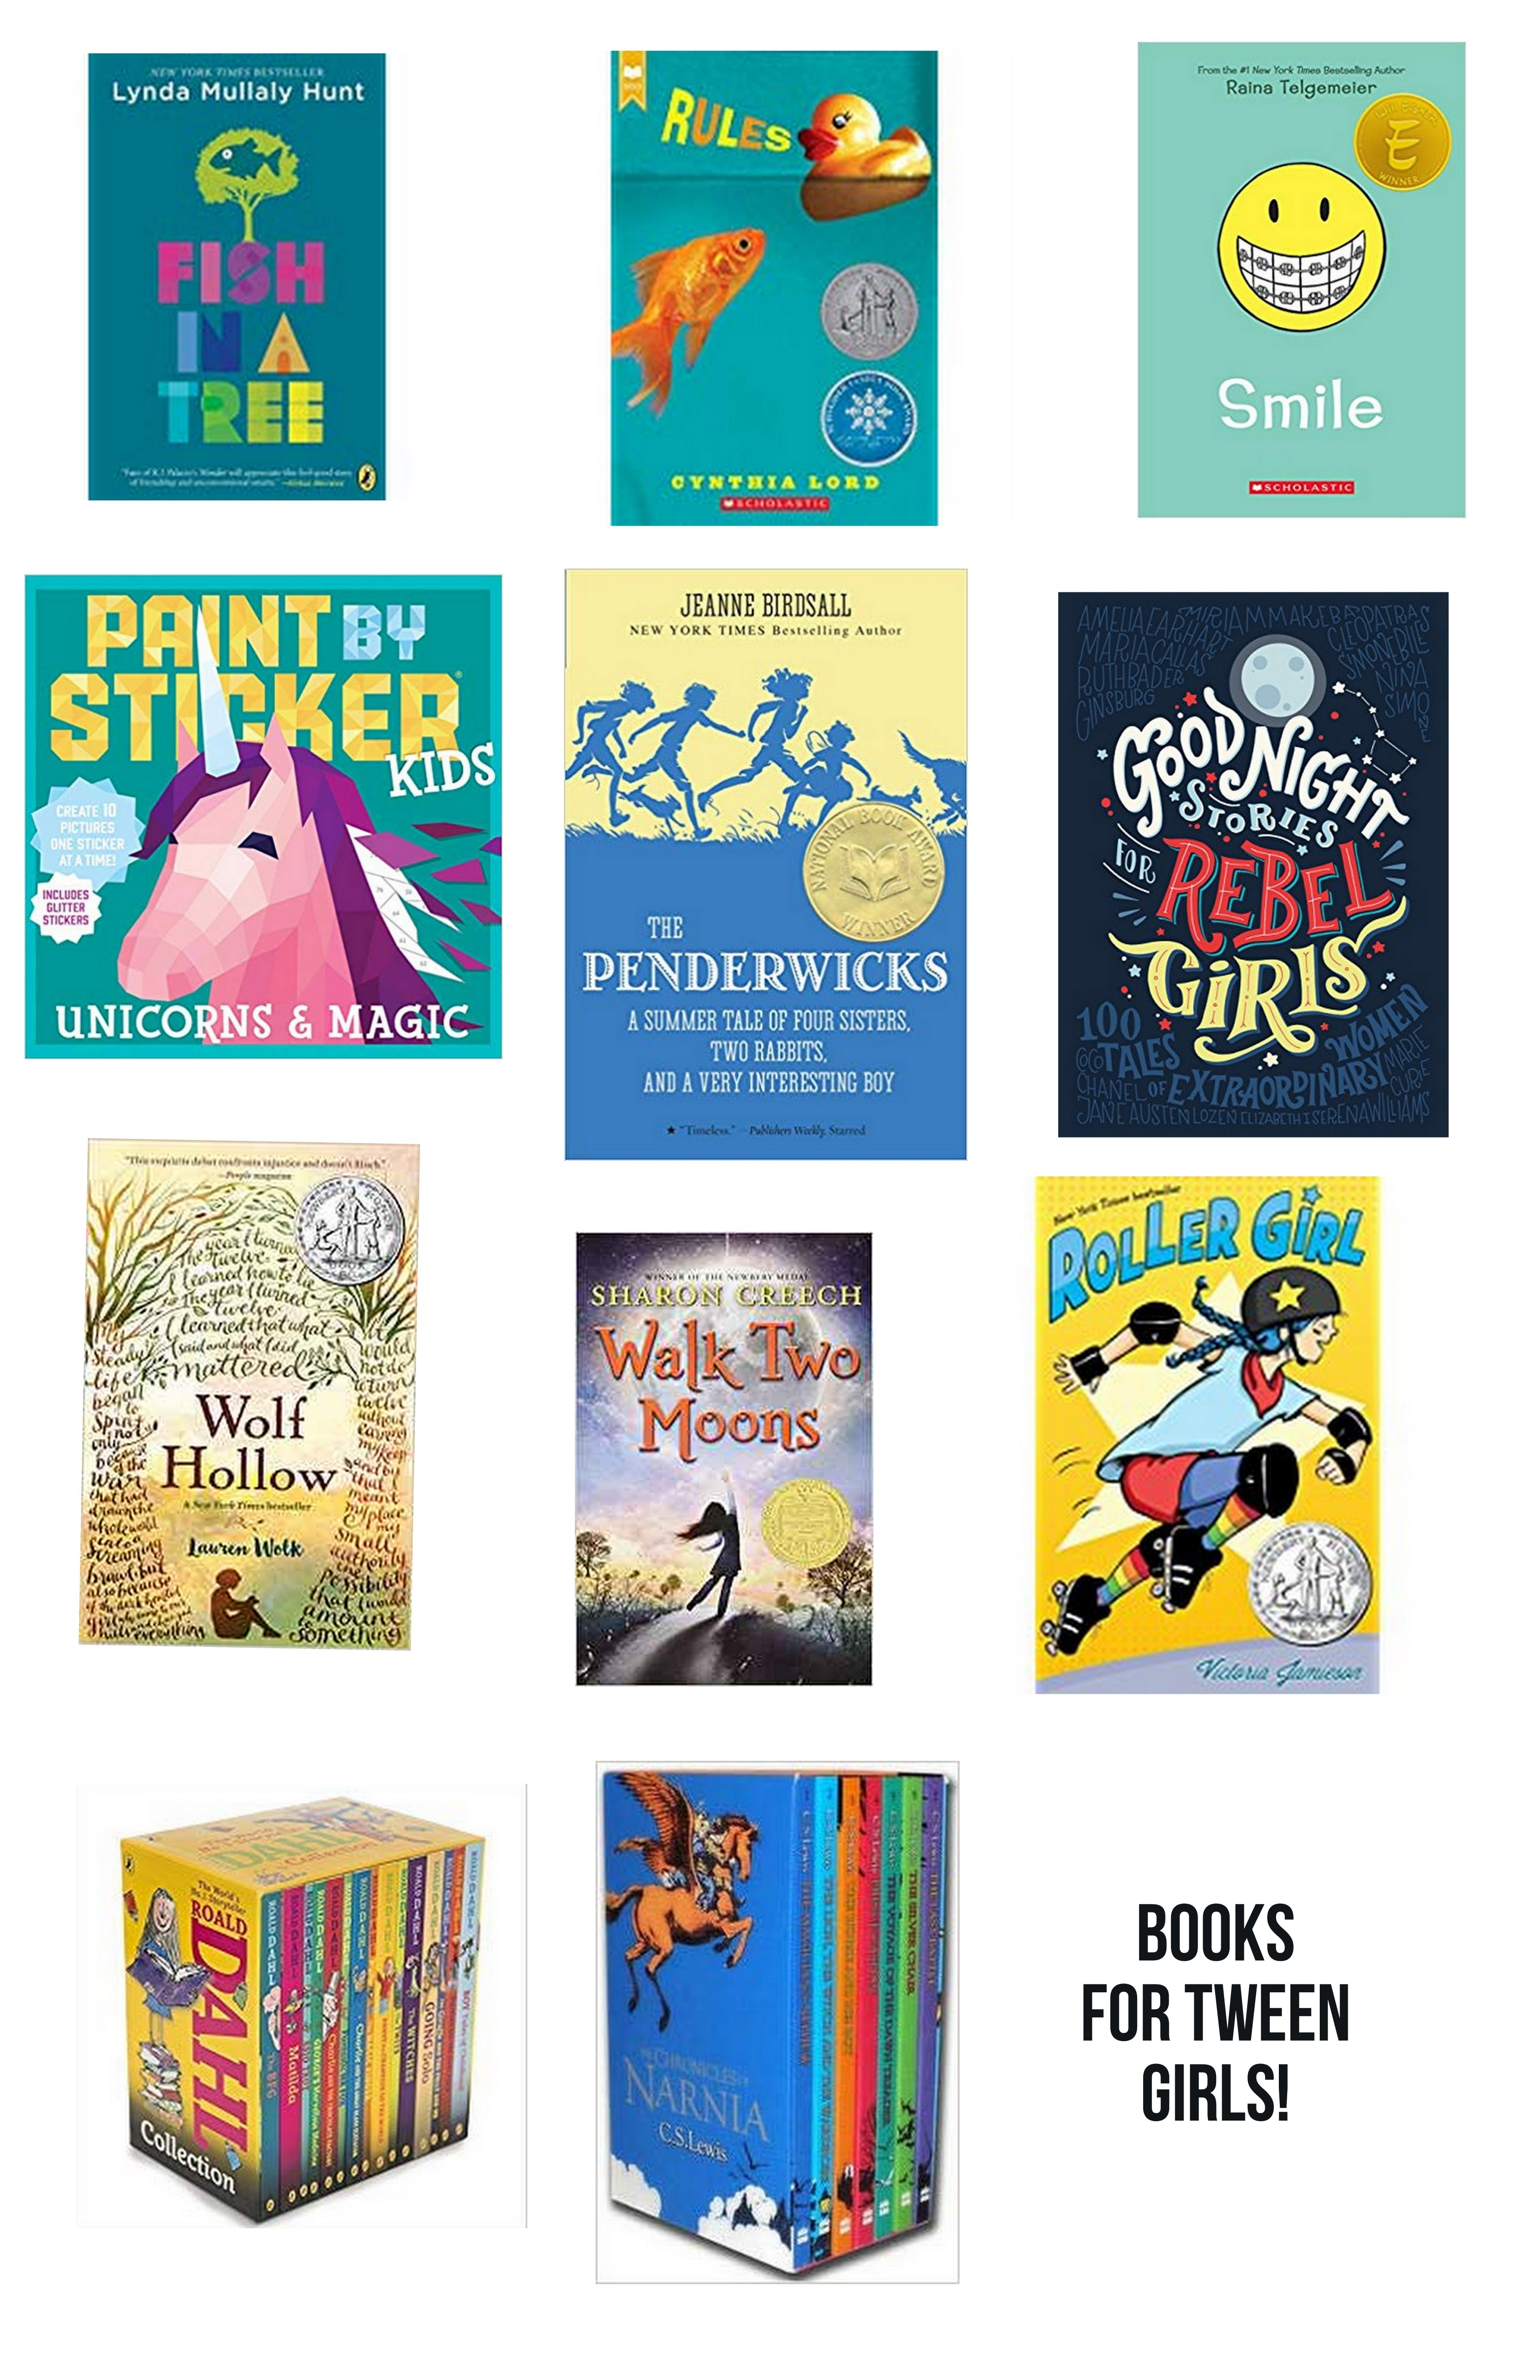 books for tween girls!